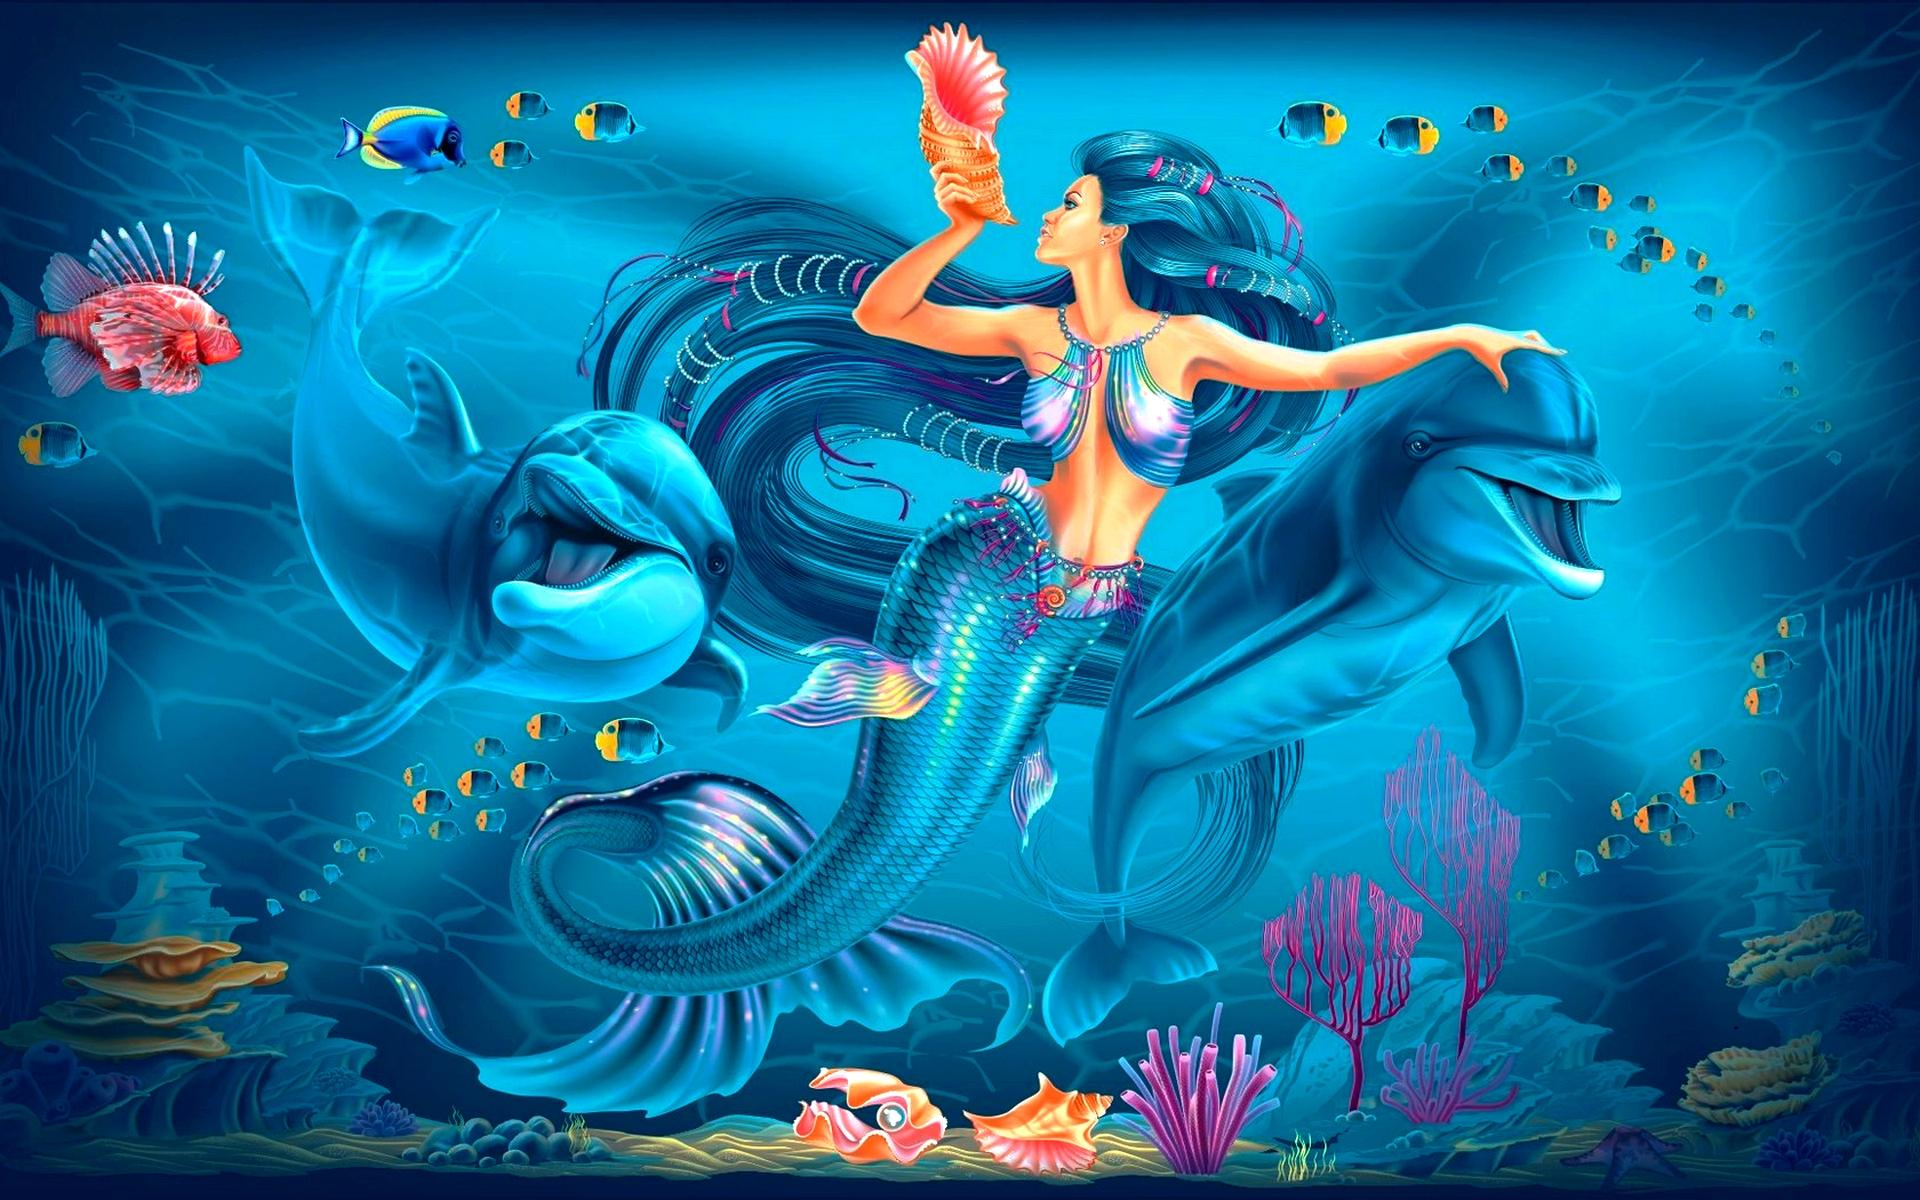 Animated Hd Wallpapers For Laptop Unterwasser Tapete Hd